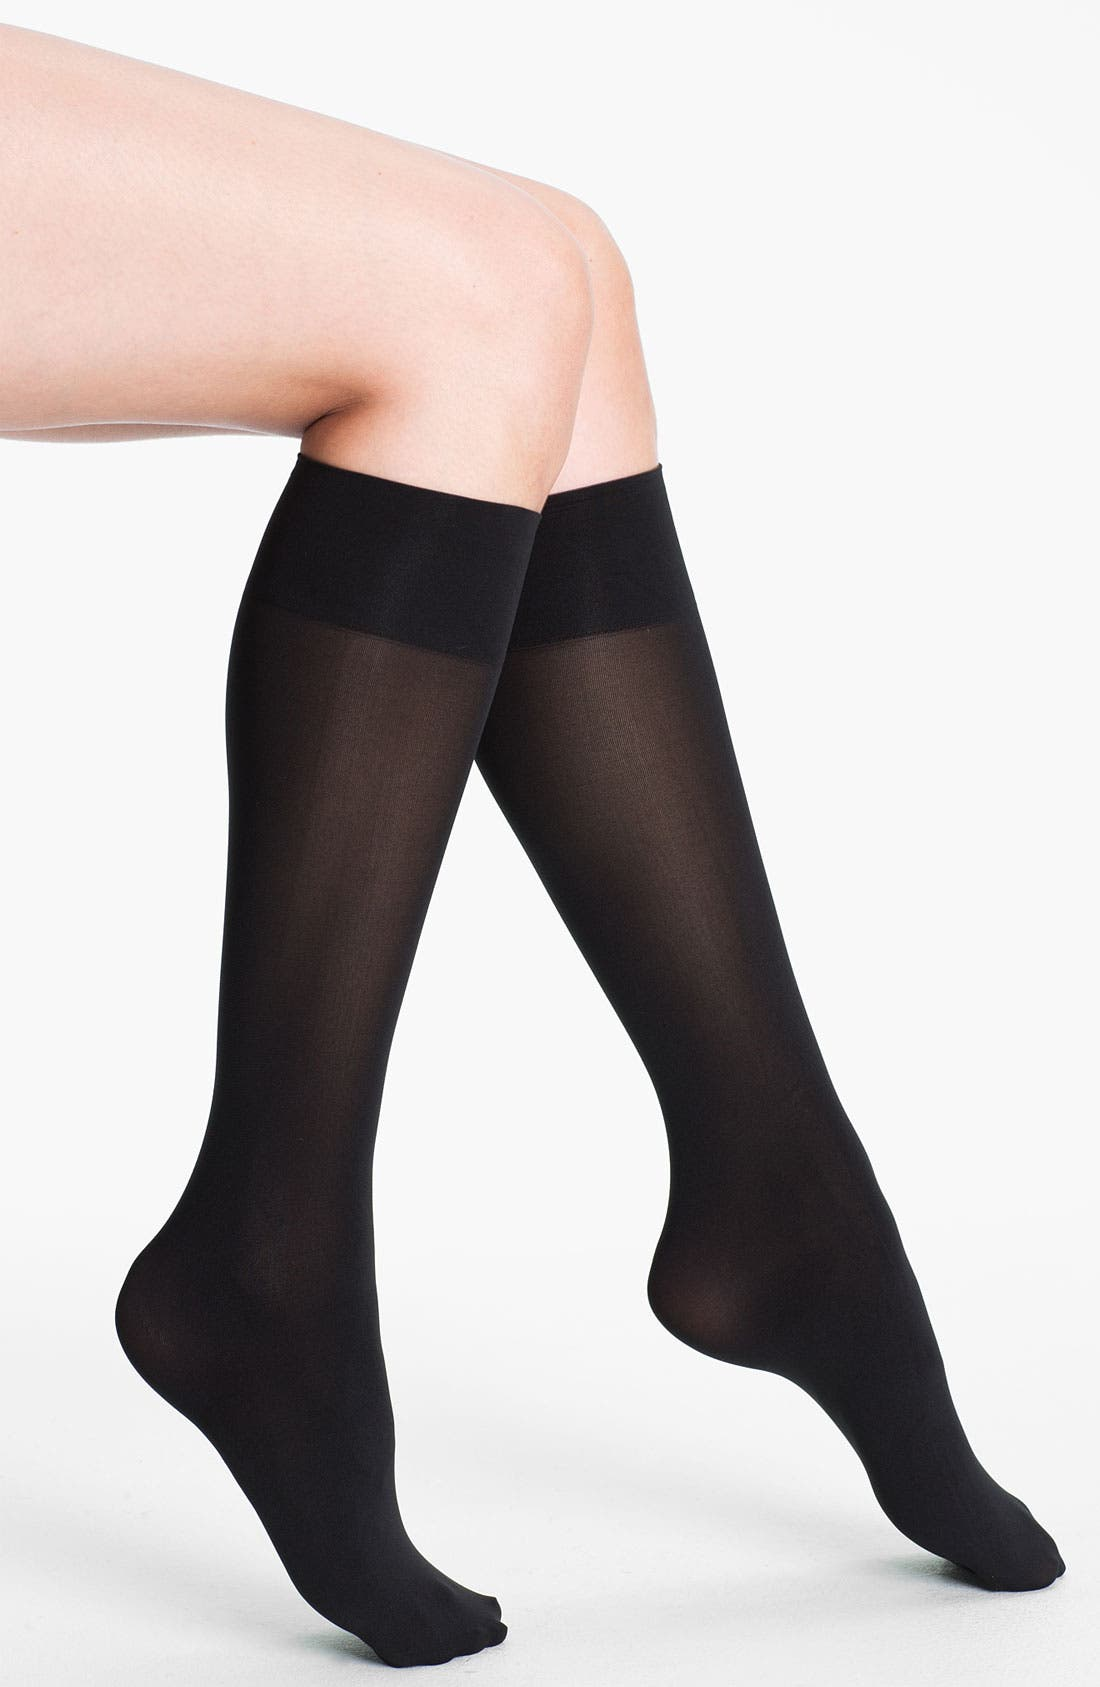 Alternate Image 1 Selected - Commando 'Ultimate' Opaque Trouser Socks